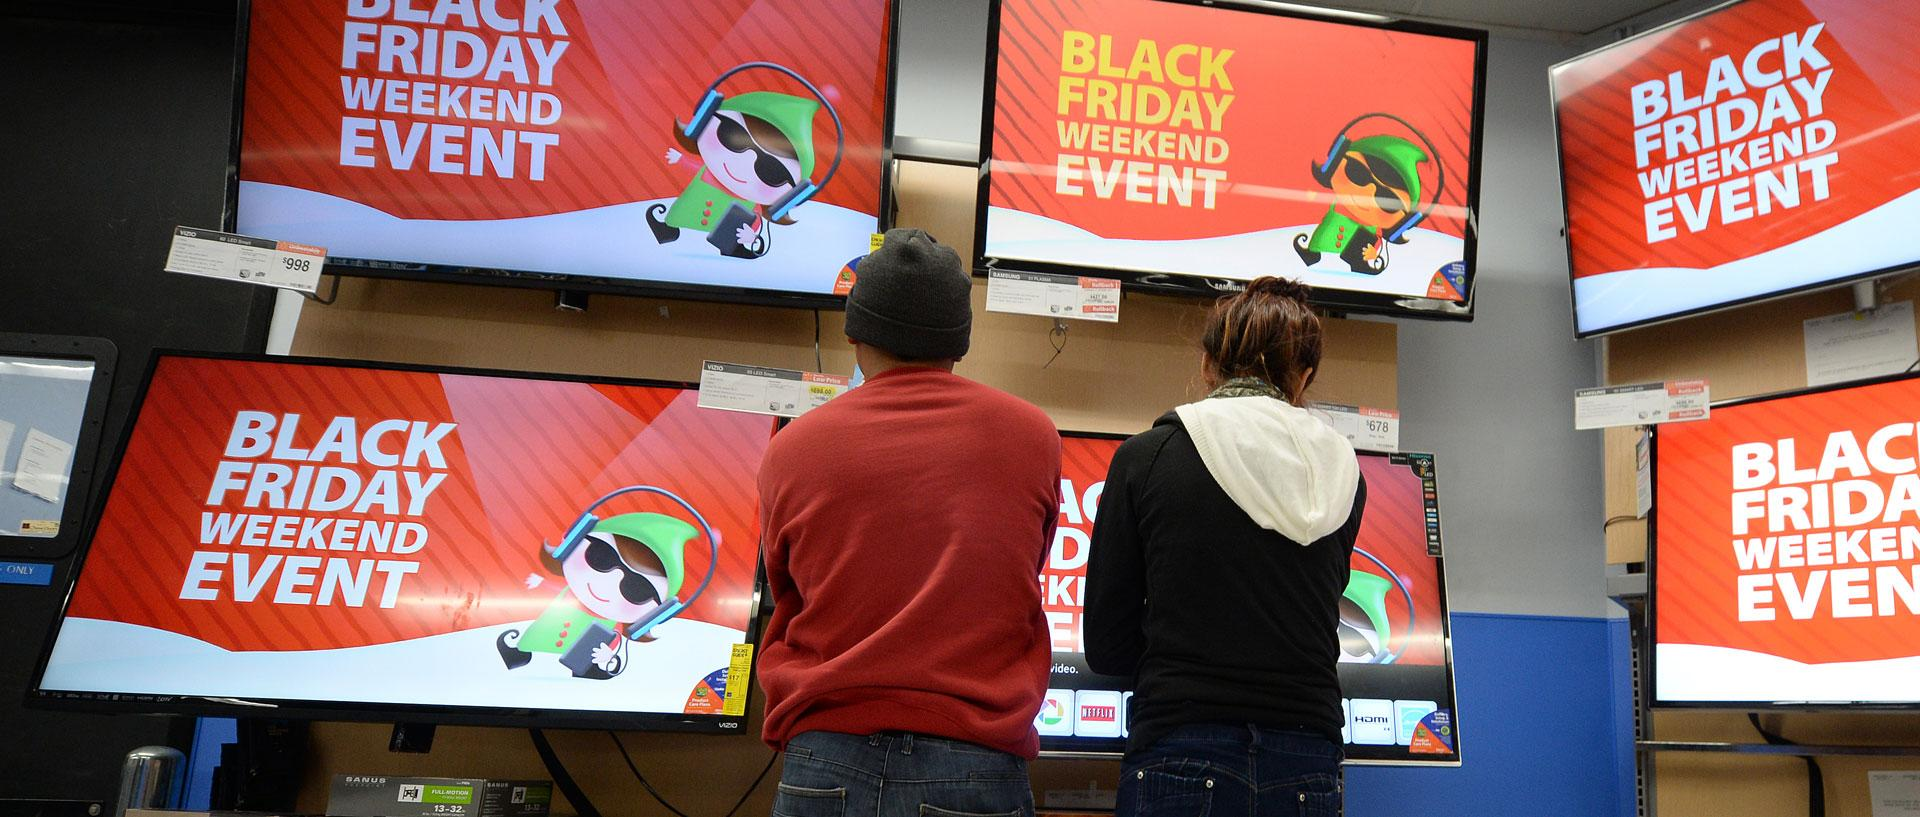 Top 10 Black Friday TV Deals for 2015